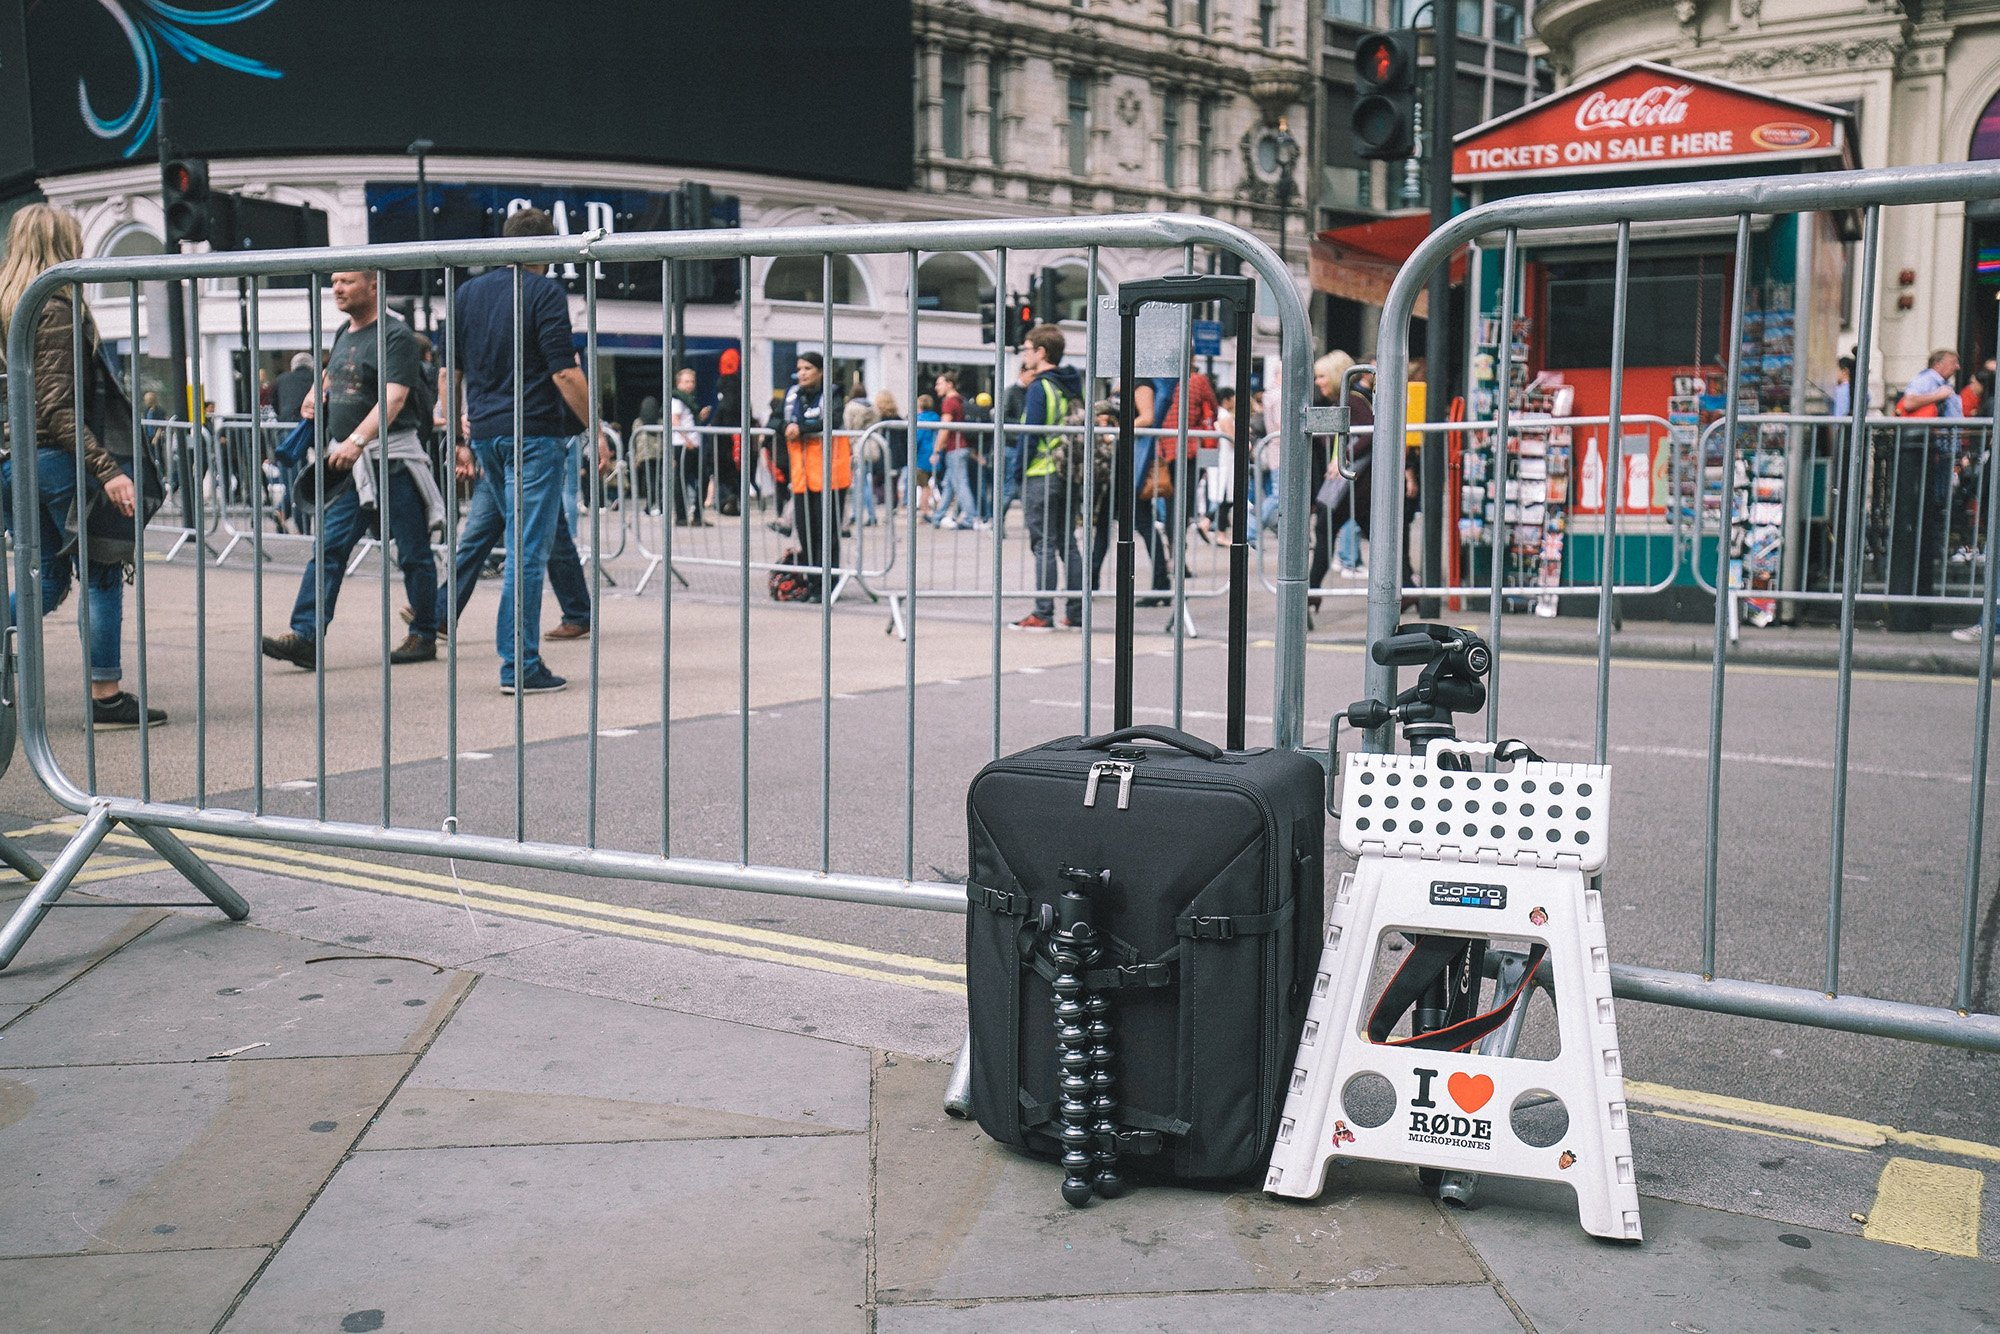 Manfrotto Pro Roller 50 and Other Gear at the Tour of Britain